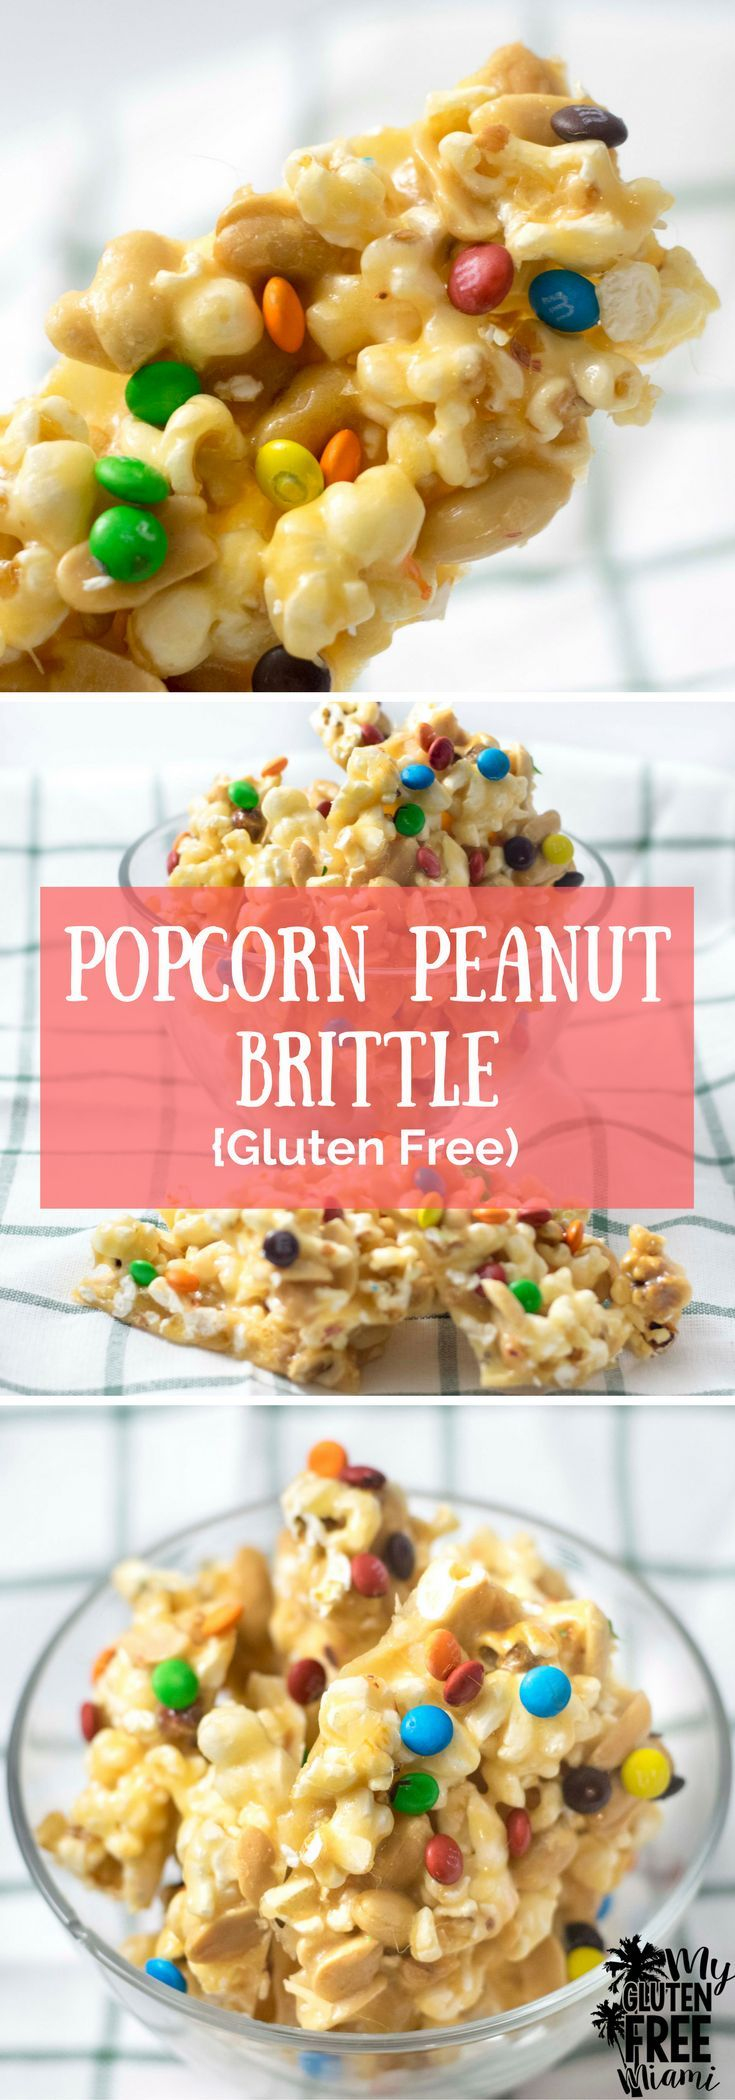 Gluten Free Popcorn Peanut Brittle- sweet, salty and crunchy, it's everything you could want in a movie night snack. via @GLUTENFREEMIAMI